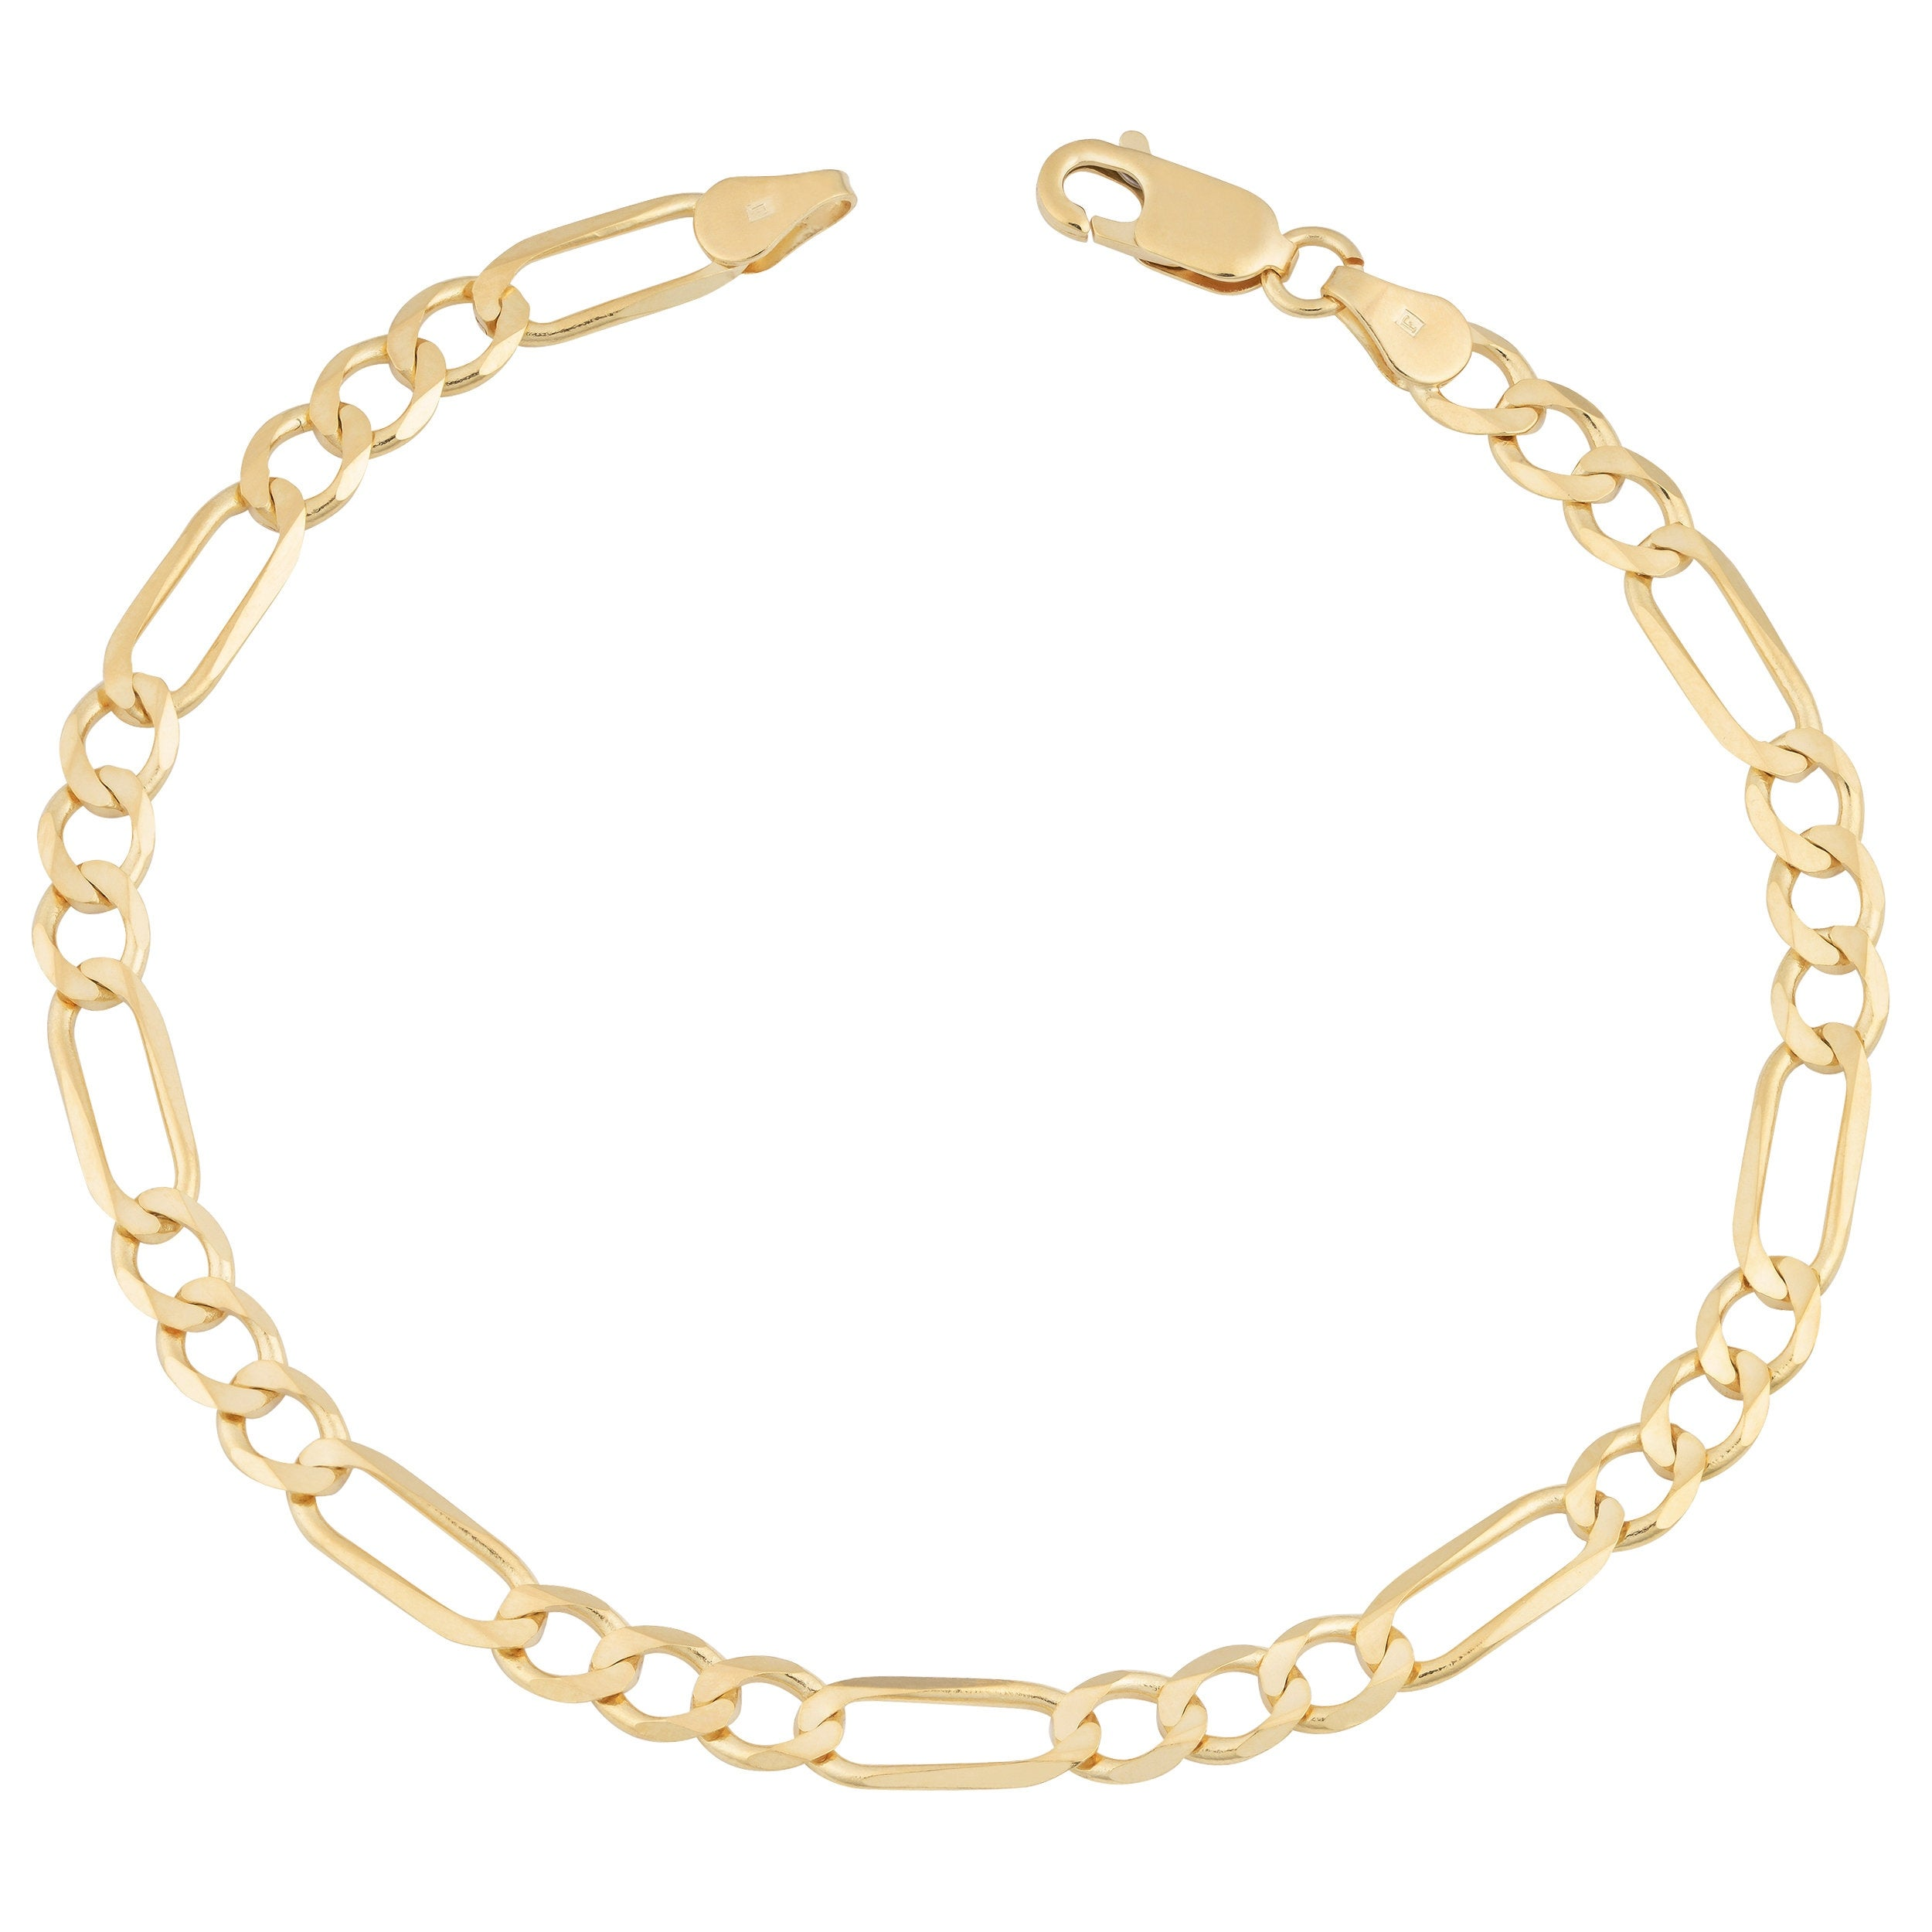 Mcs Jewelry Inc 21 KARAT YELLOW GOLD CLASSIC SOLID FIGARO CHAIN BRACELET  21 21 INCHES